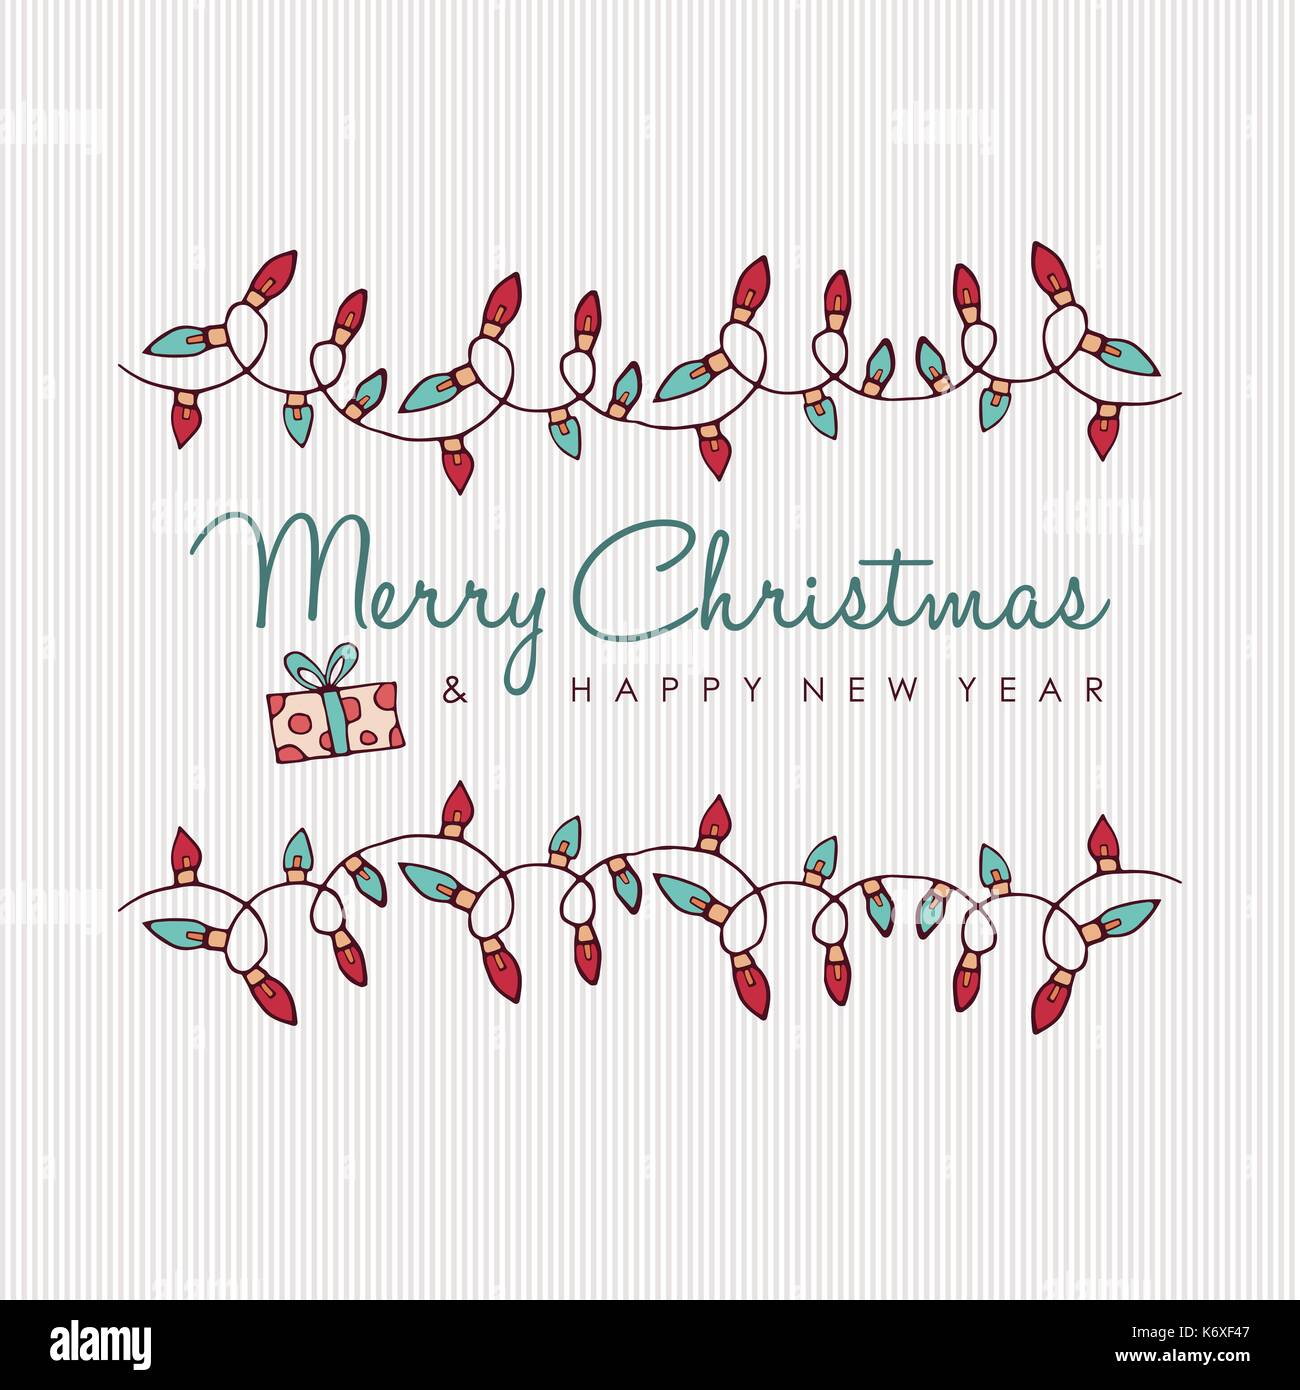 Merry Christmas And Happy New Year Hand Drawn Greeting Card